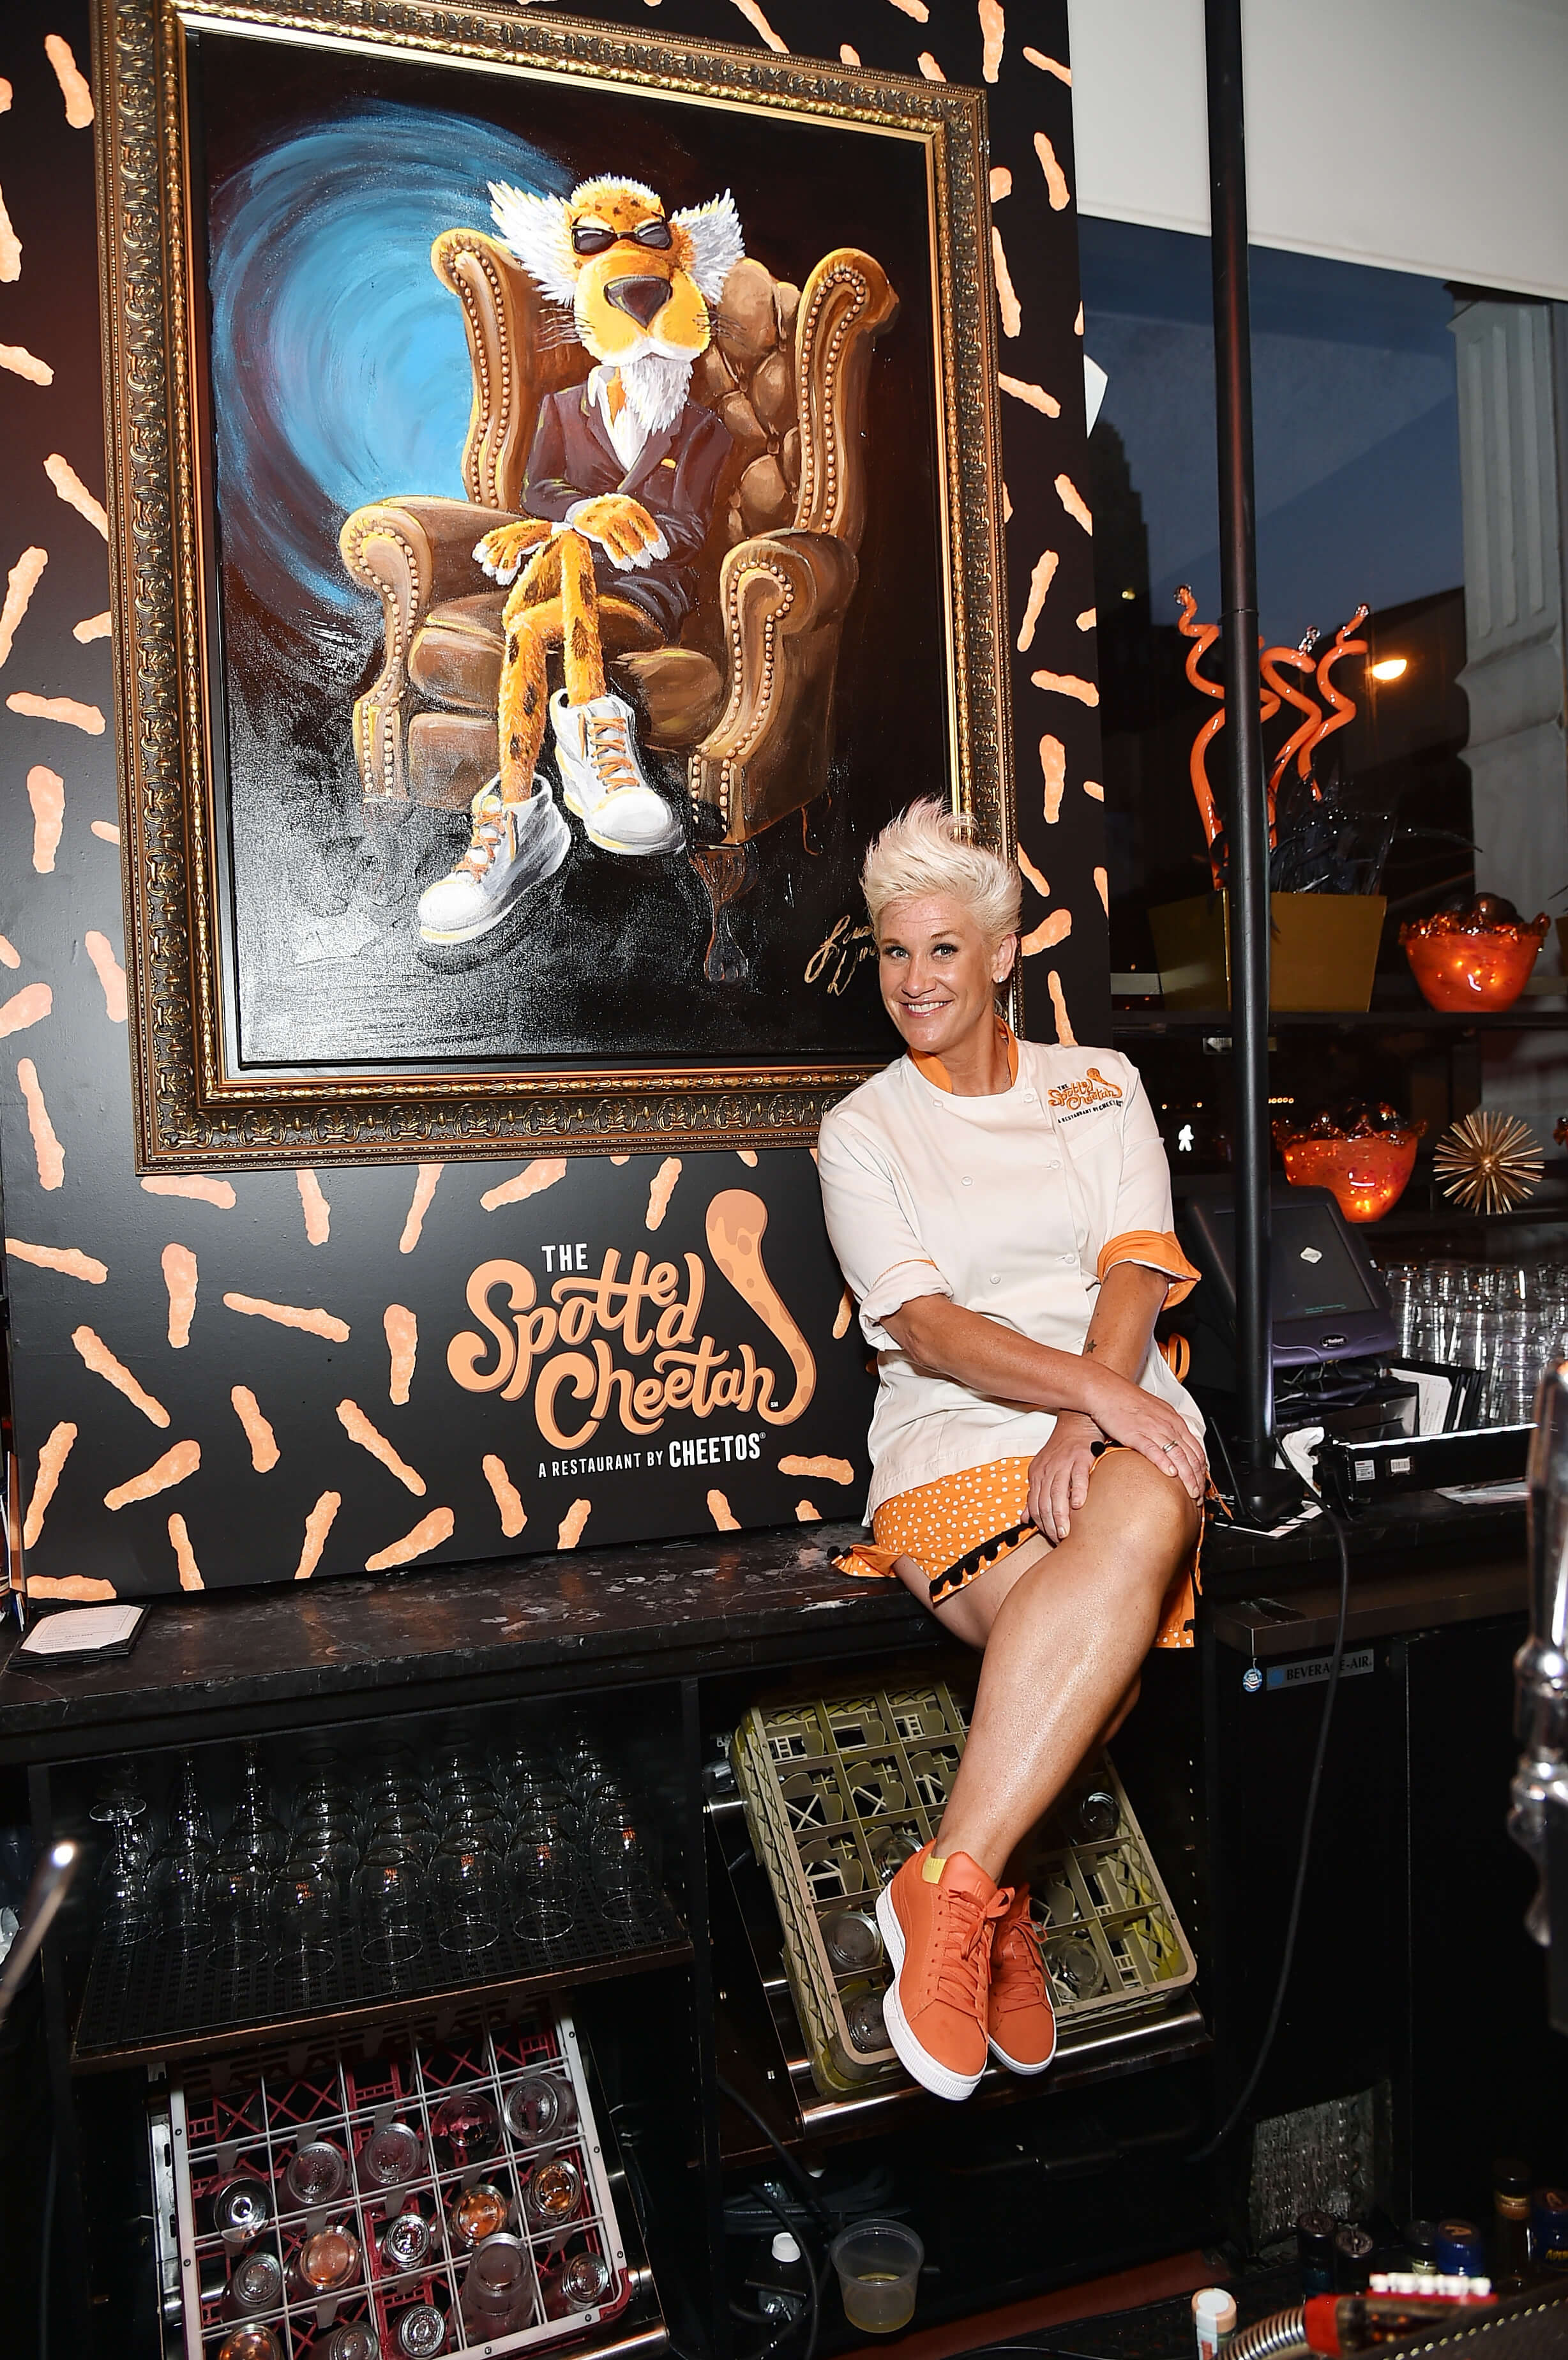 Celebrity chef Anne Burrell posed with Chester Cheetah at The Spotted Cheetah, a three-day-only Cheetos restaurant in NYC.